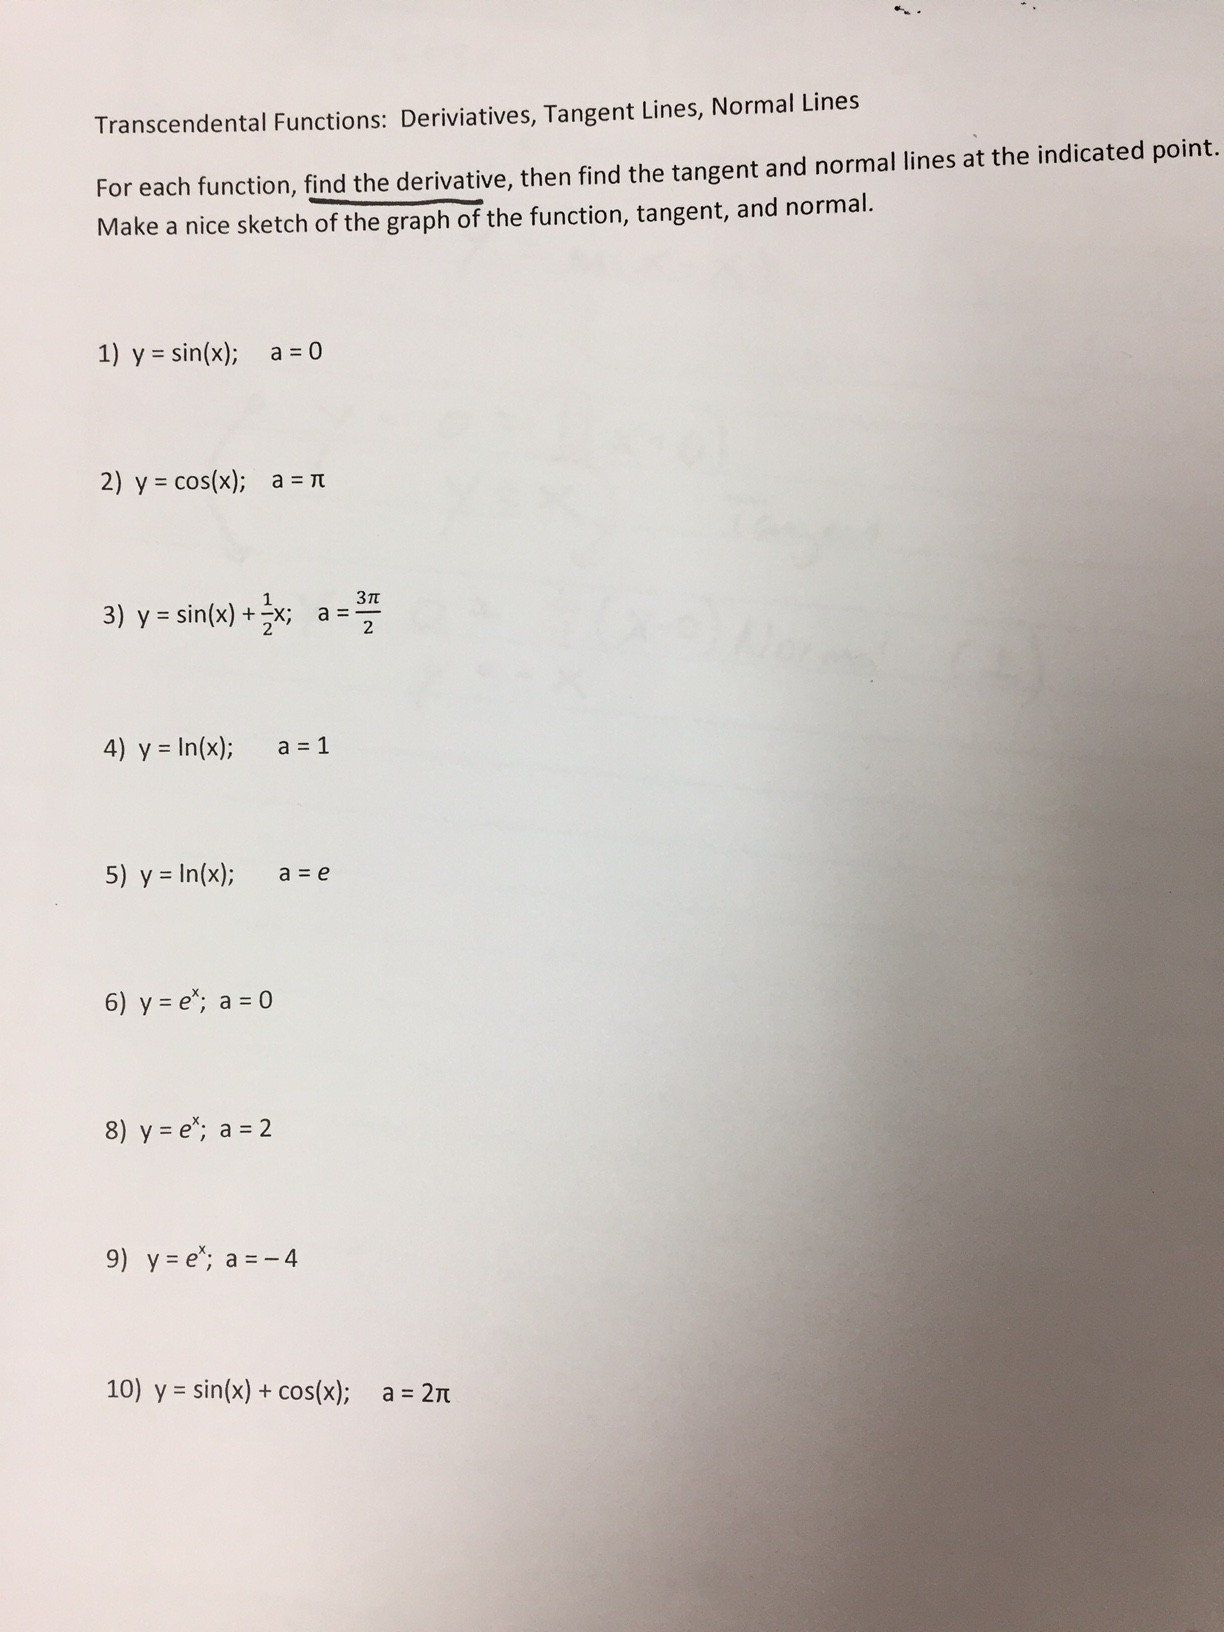 Product And Quotient Rule Worksheet Quotient Rule Derivatives Worksheet In 2020 Quotient Rule Worksheet Template Worksheets